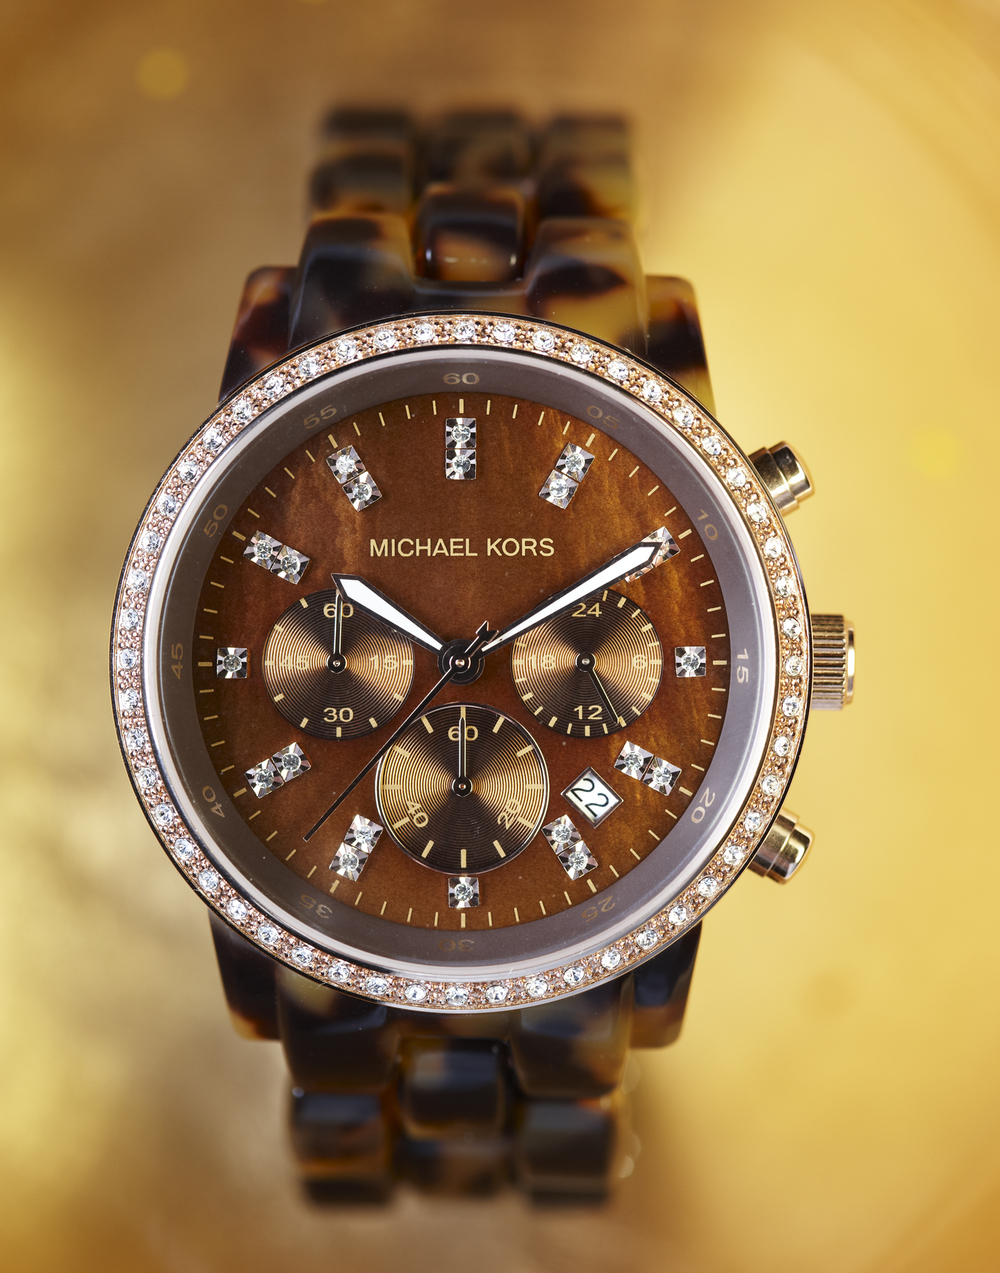 Michael Kors Watch9881.jpg